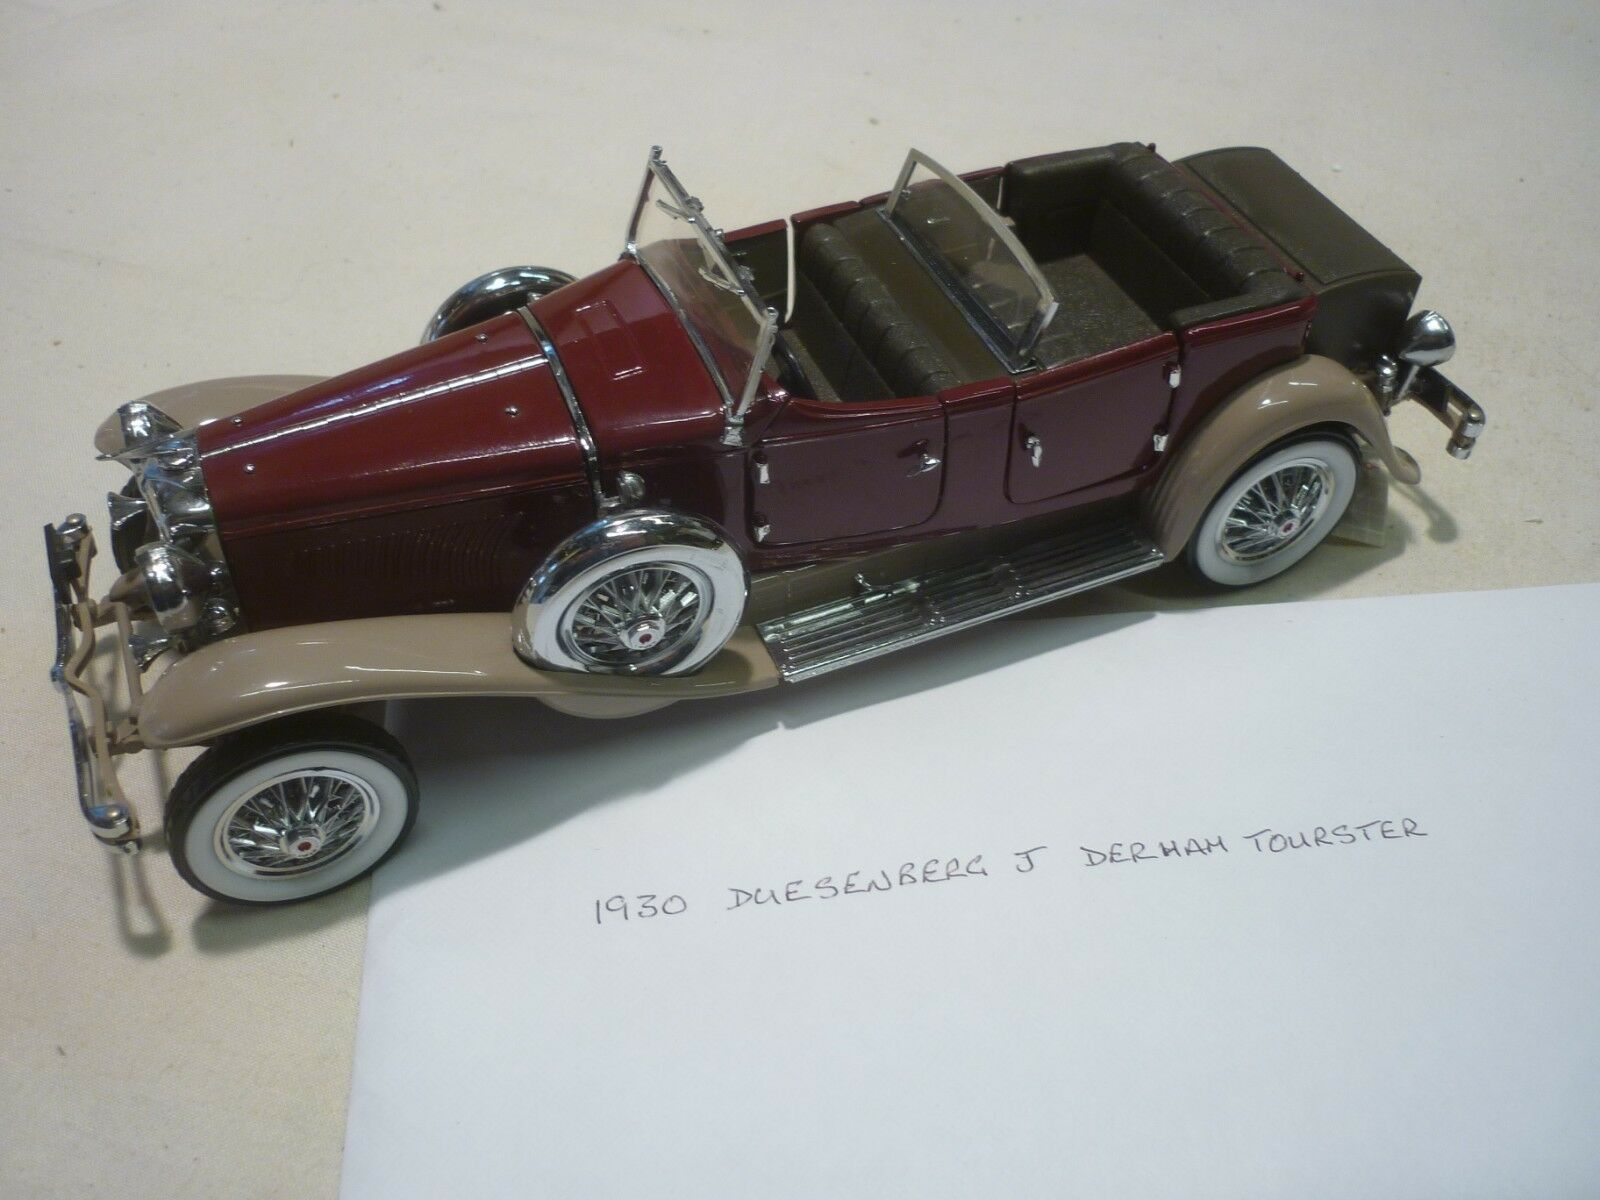 A Franklin mint, 1930 Duesenberg J Derham tourester, paper work, display case